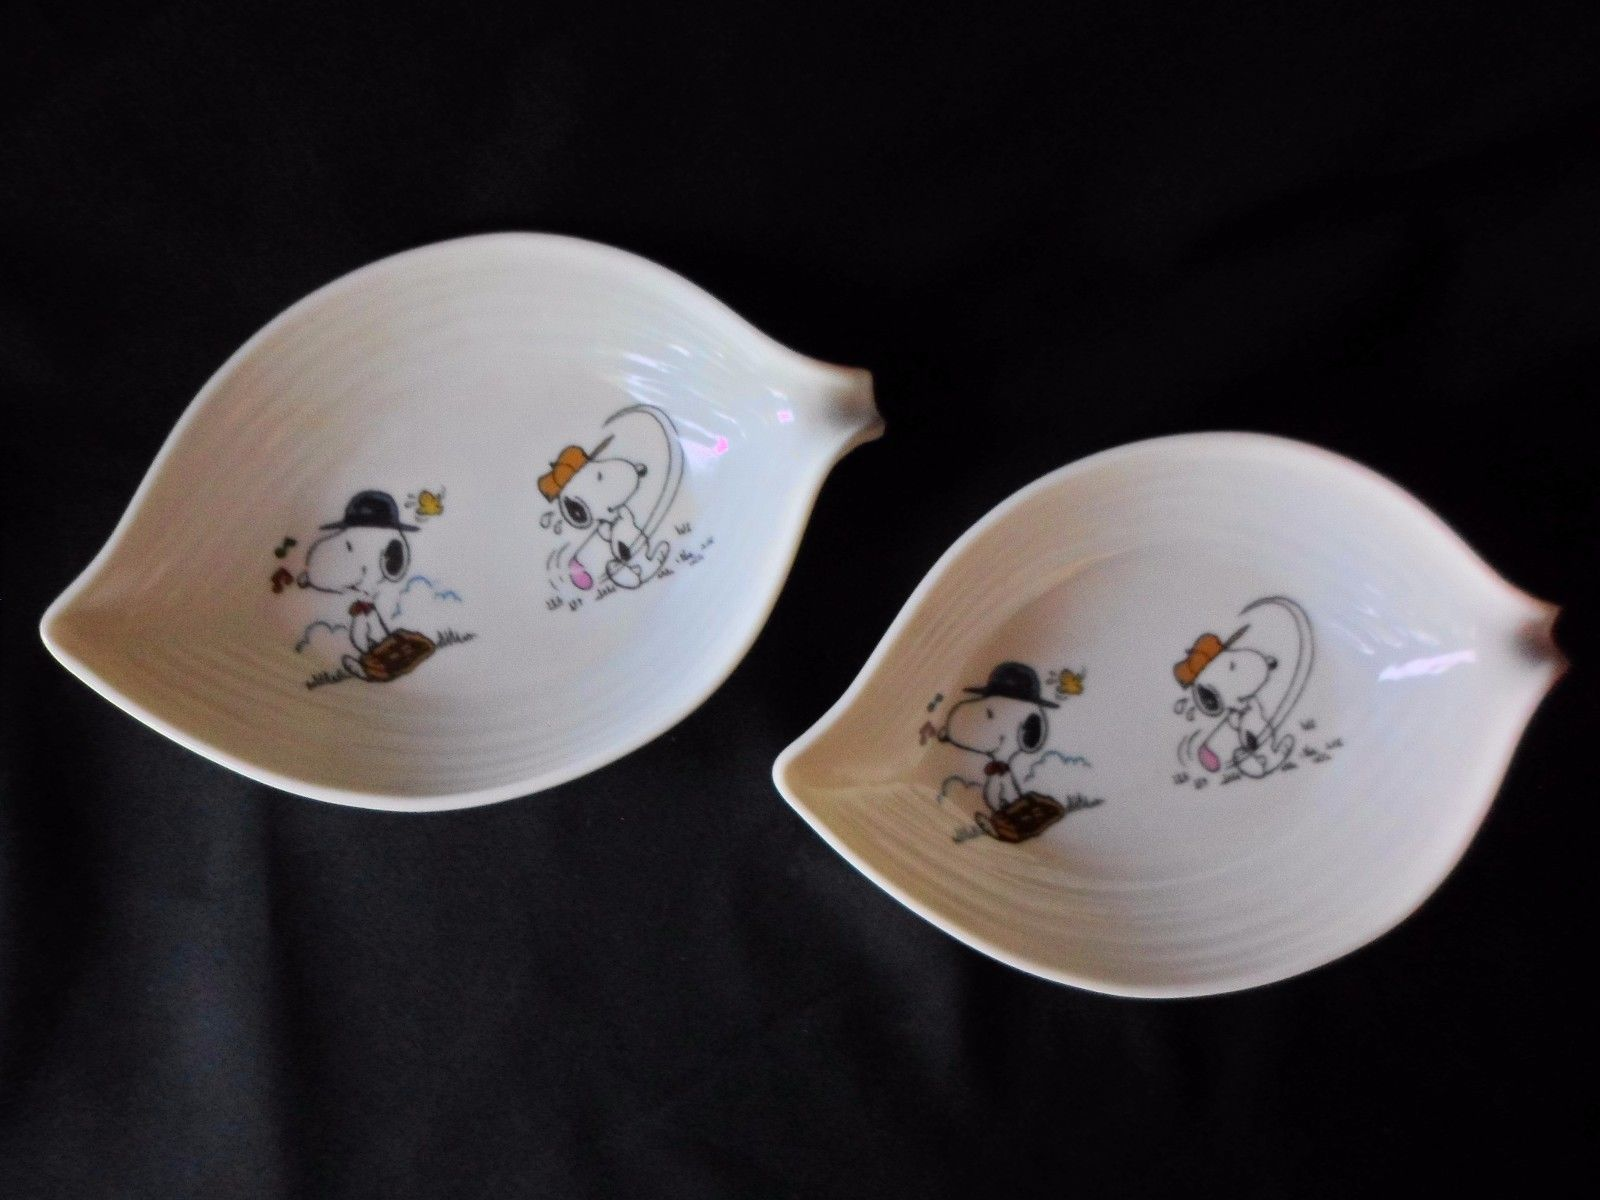 Primary image for Peanuts Snoopy Charlie Brown Plastic Melamine Bowl set of 2 Bowls Golf Vintage